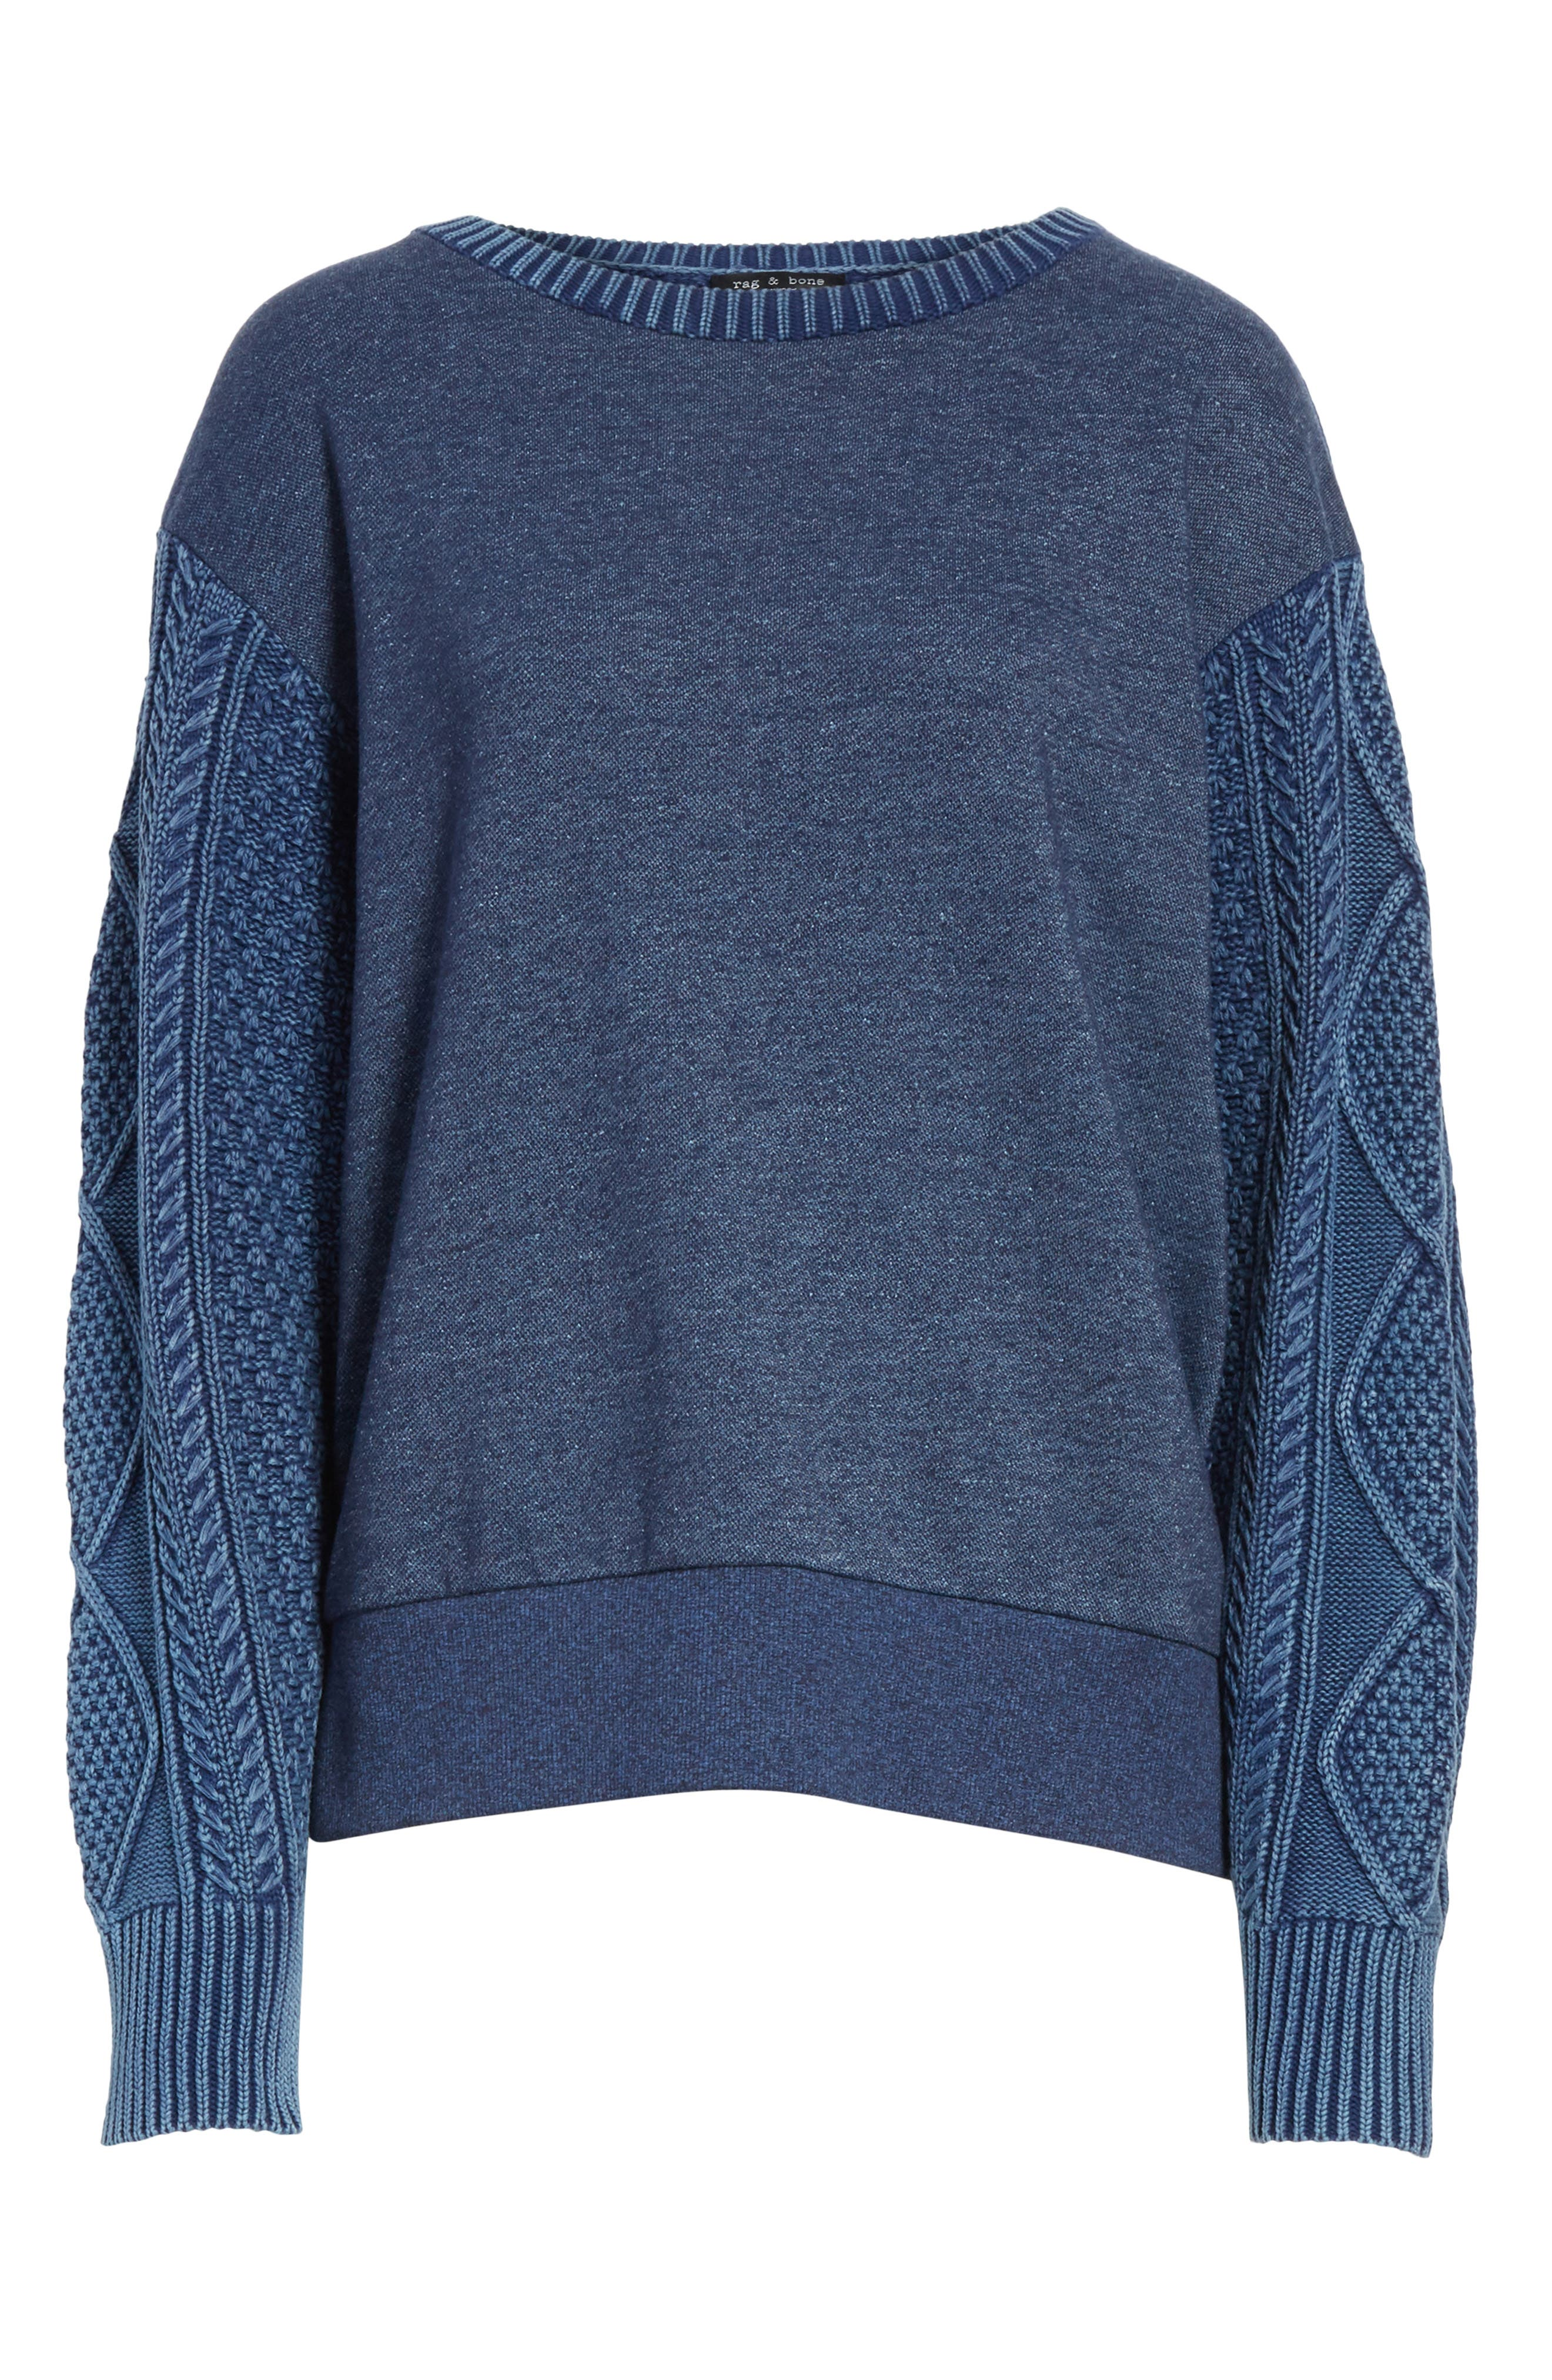 Harper Cable Knit Sweater,                             Alternate thumbnail 6, color,                             470